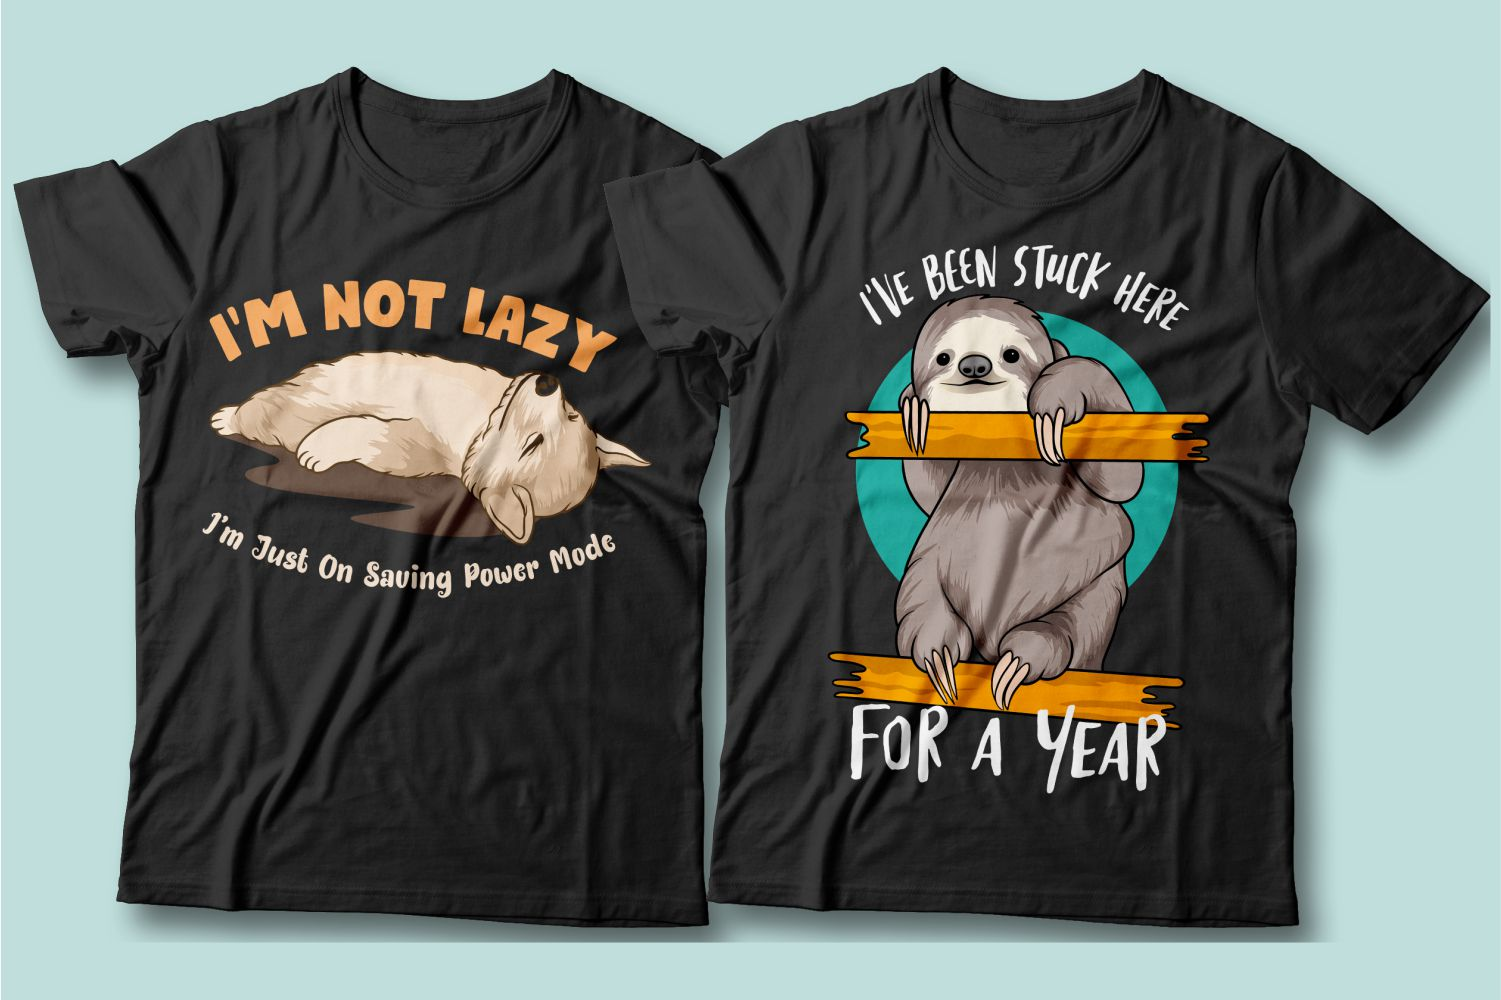 The sloth animal and the lazy cat seem to be from the same species.